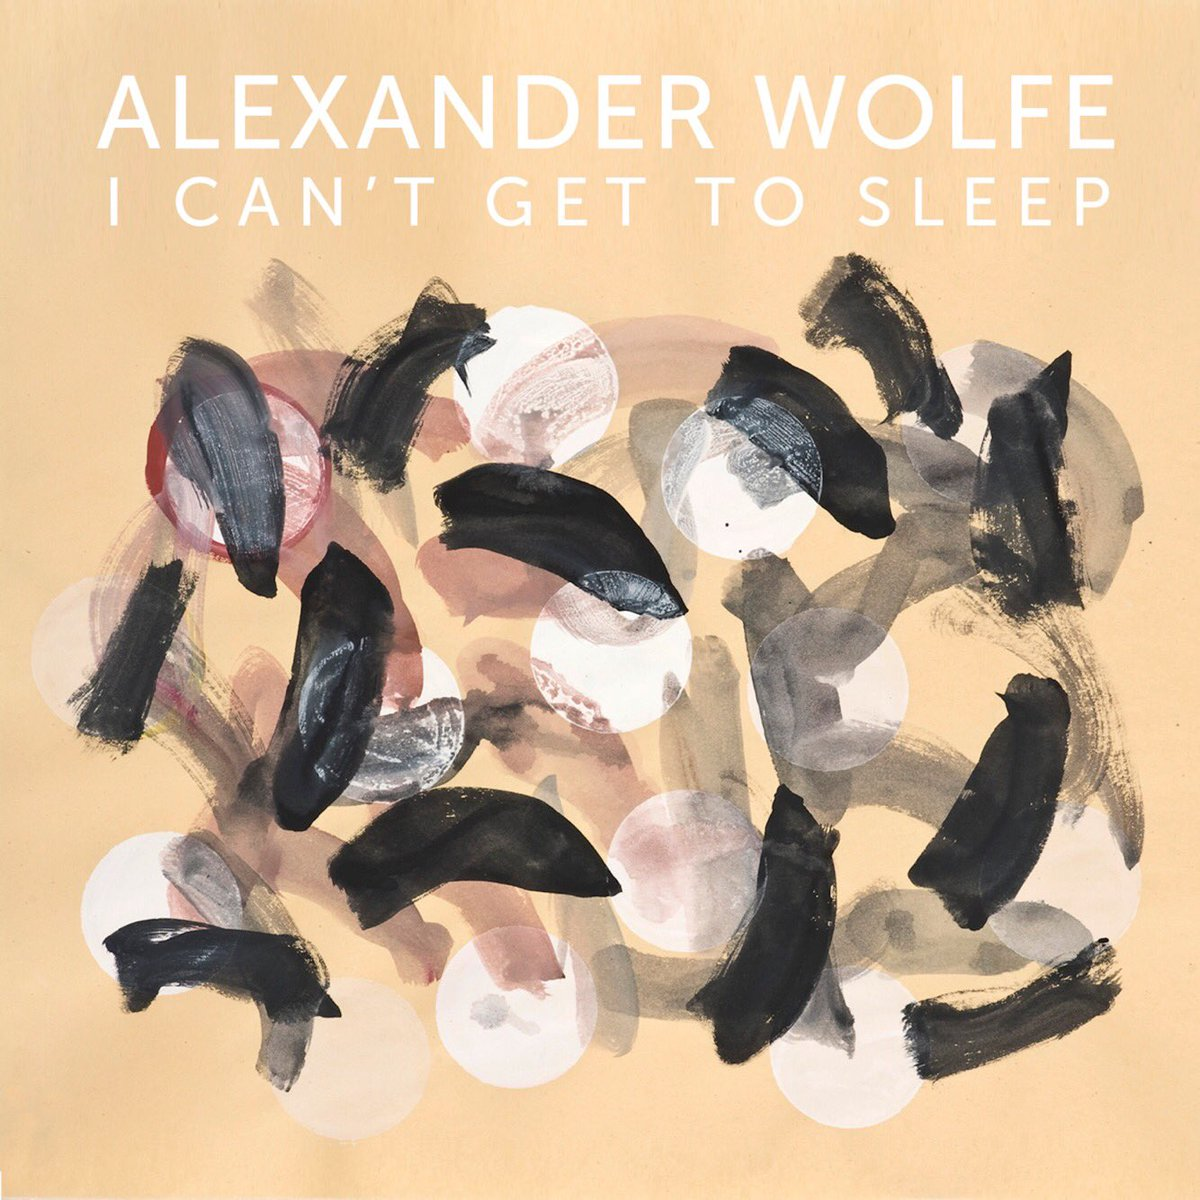 'I Can't Get to Sleep' is out now. Listen here: https://t.co/n707d88SnO https://t.co/62PZF1CT7P